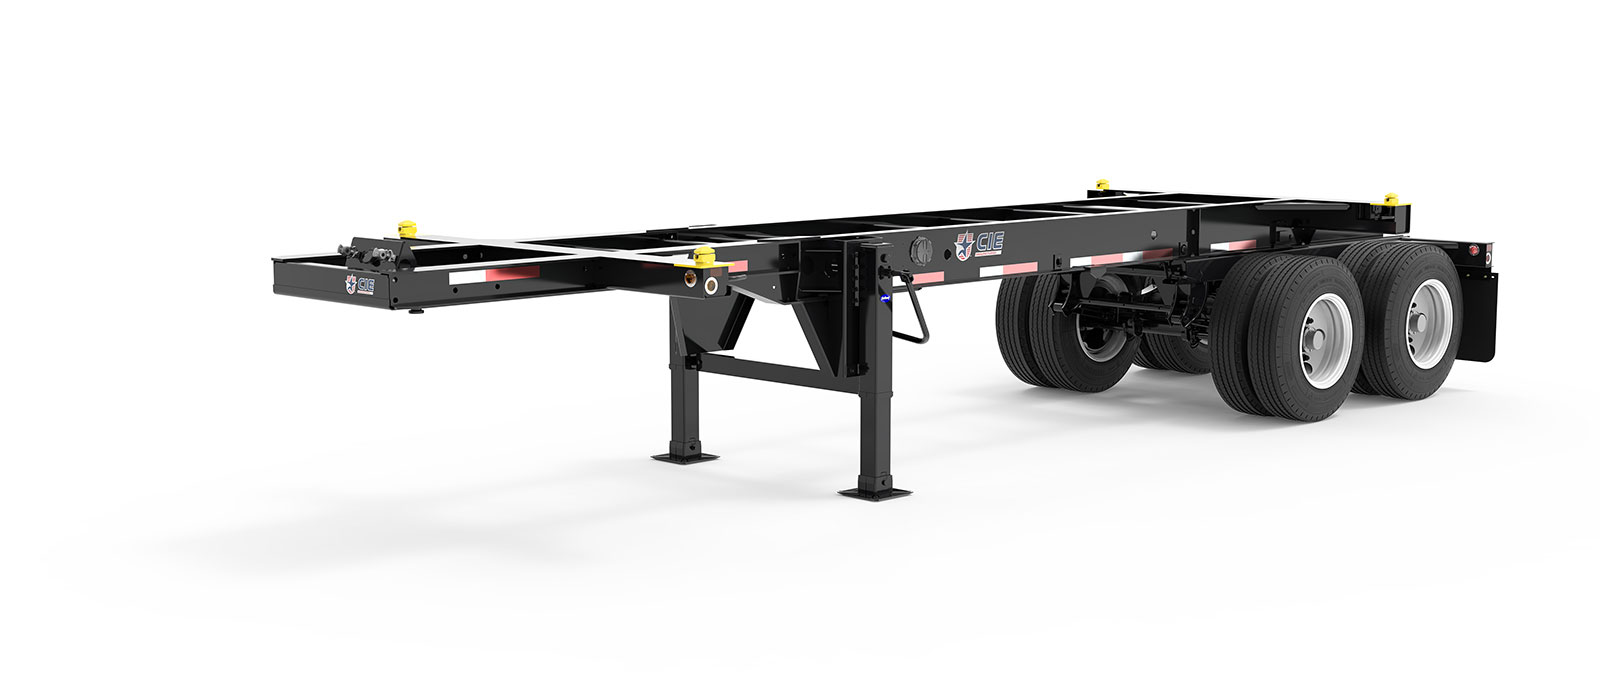 23.5' Tandem Slider Container Chassis Literature Angle View Final